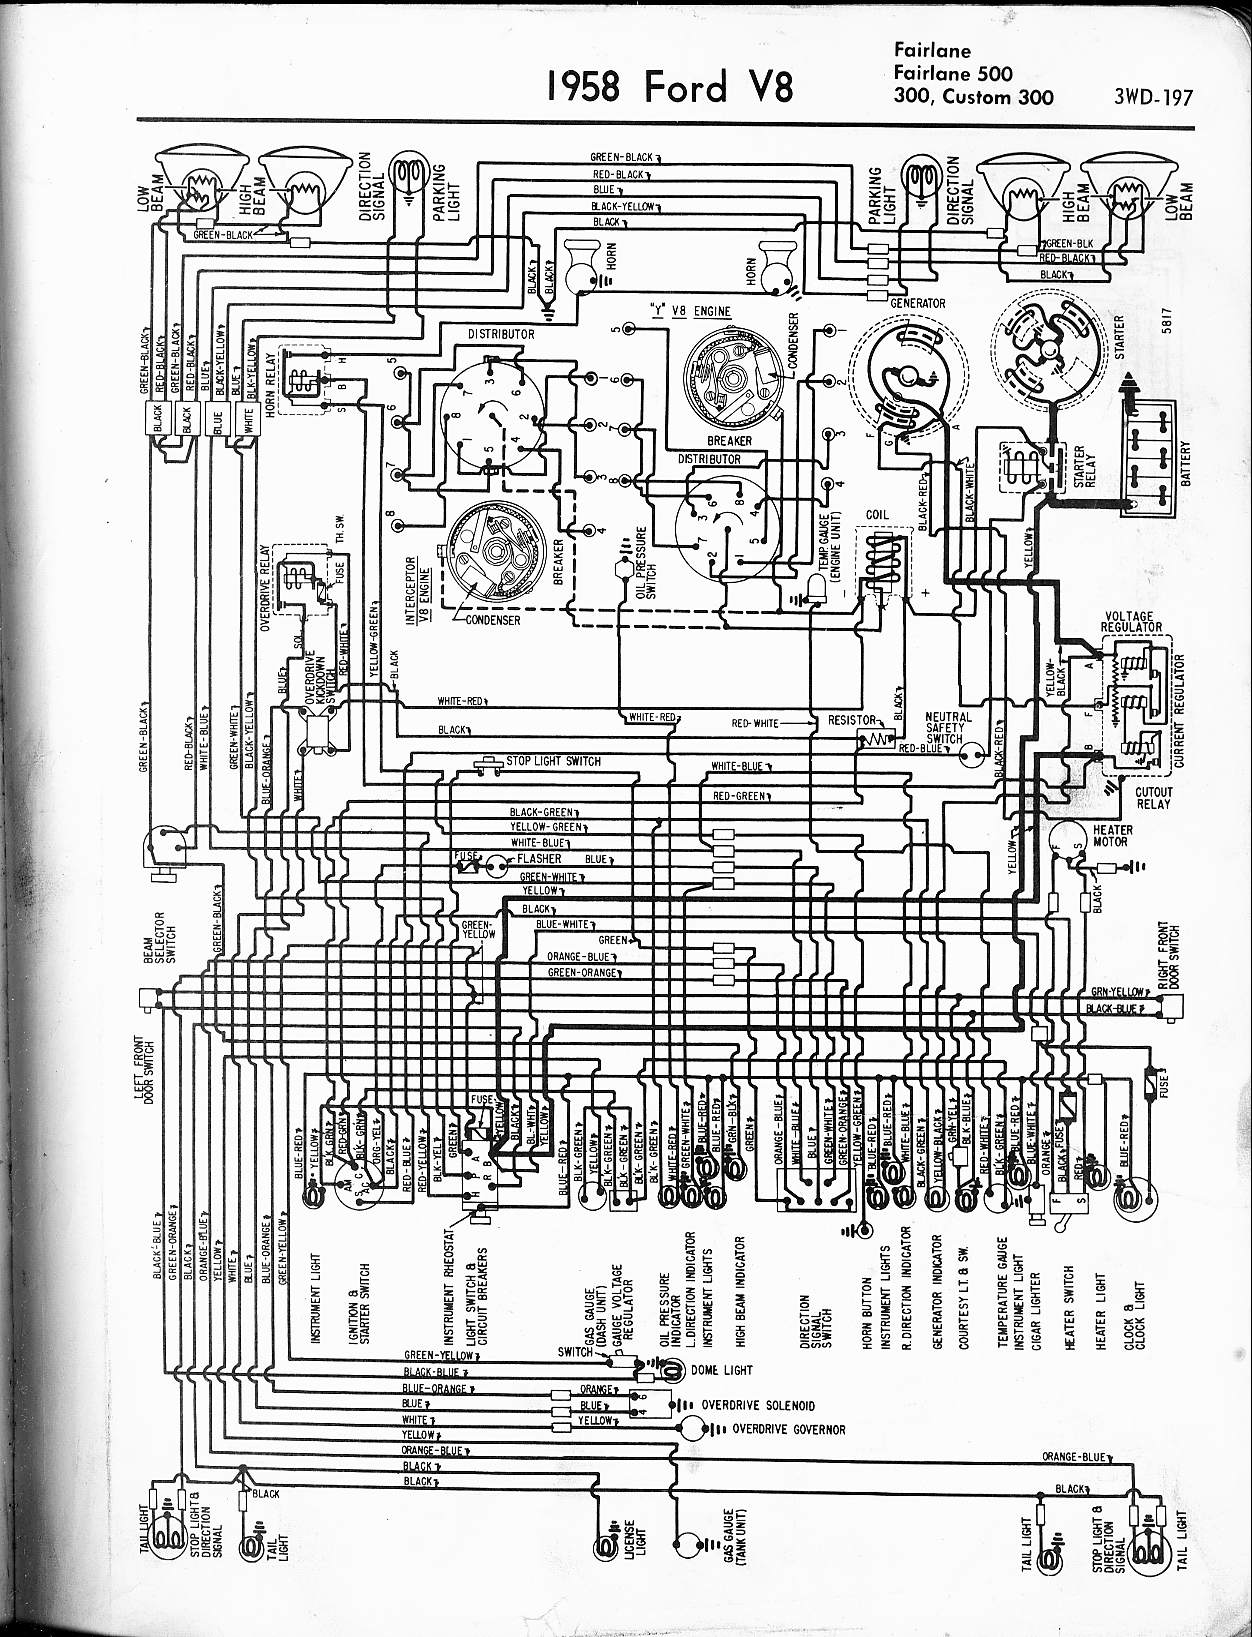 MWire5765 197 57 65 ford wiring diagrams Mercury Wiring Diagram at eliteediting.co